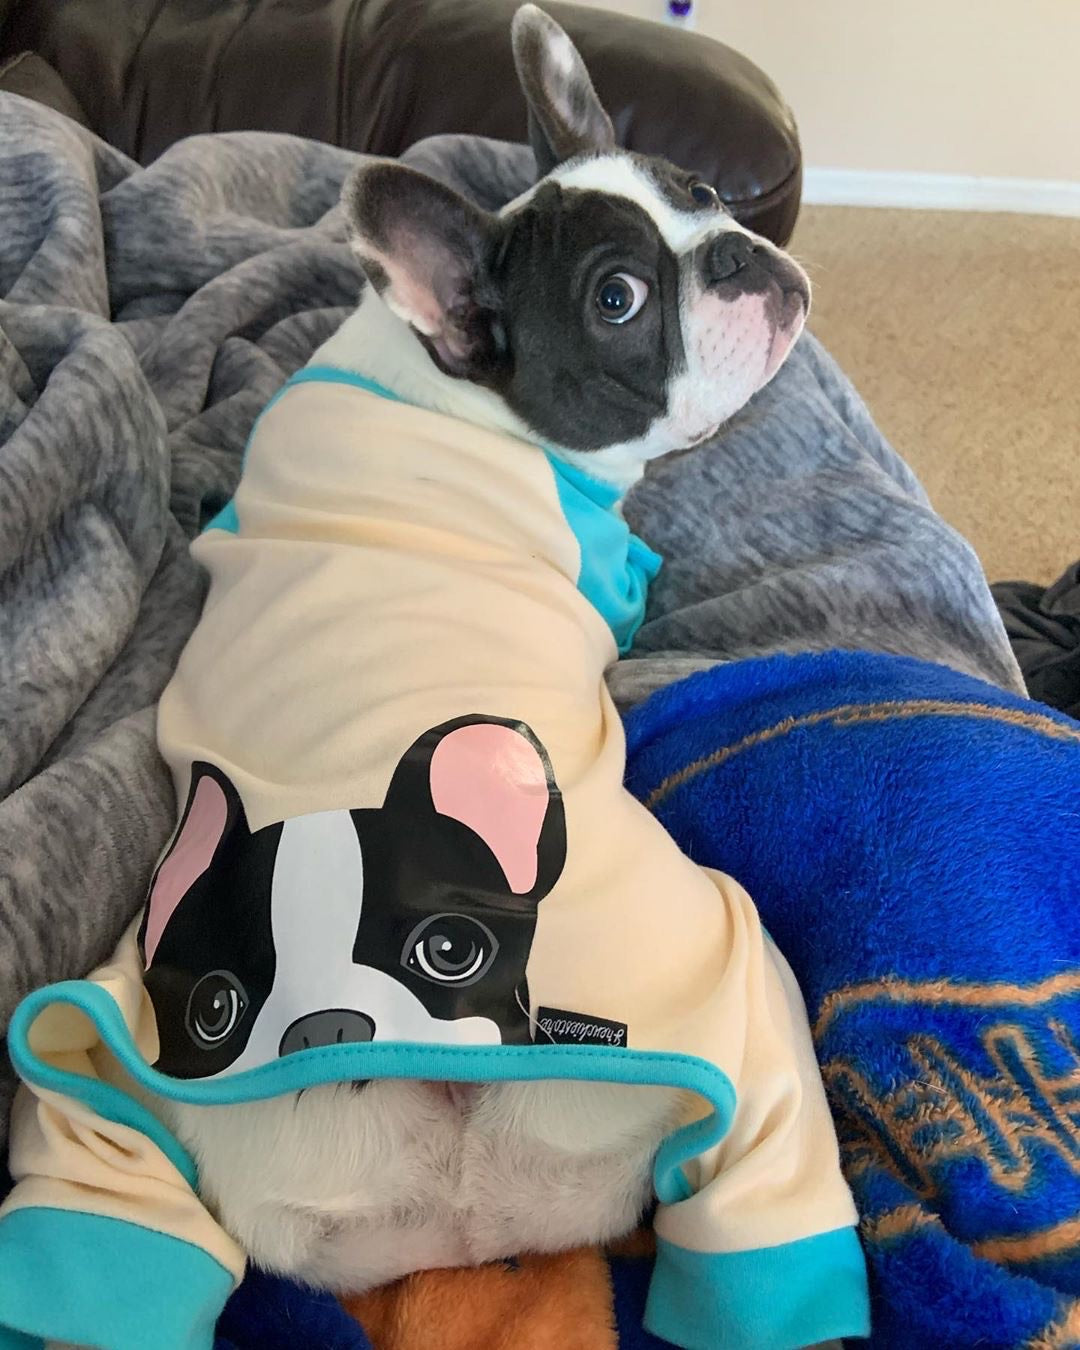 French Bulldog Pajamas in Aqua | Frenchie Clothing | Black Pied Frenchie Dog, Frenchie Dog, French Bulldog pet products